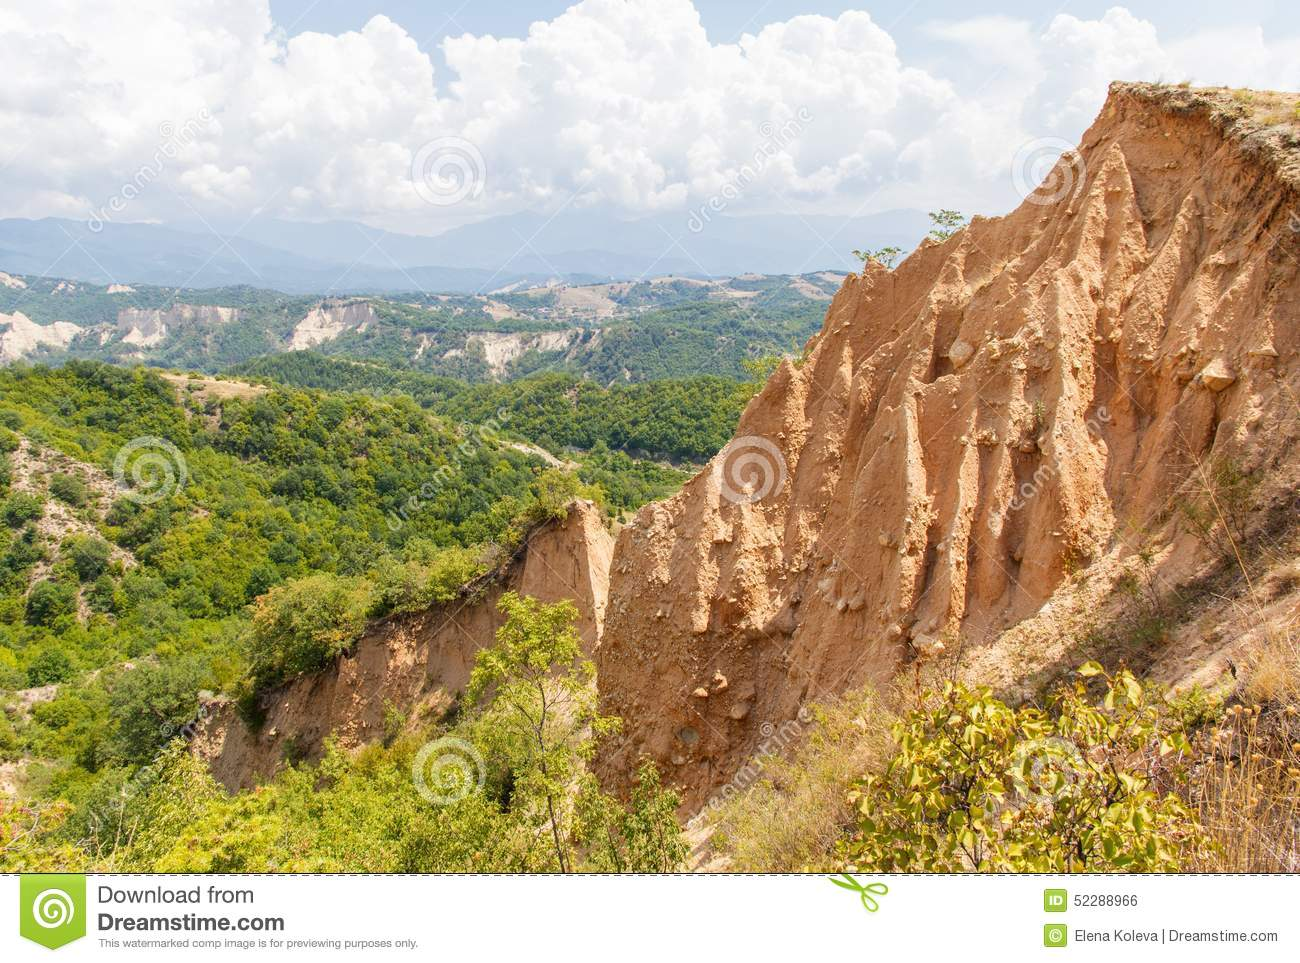 sand pyramids of melnik - photo #34